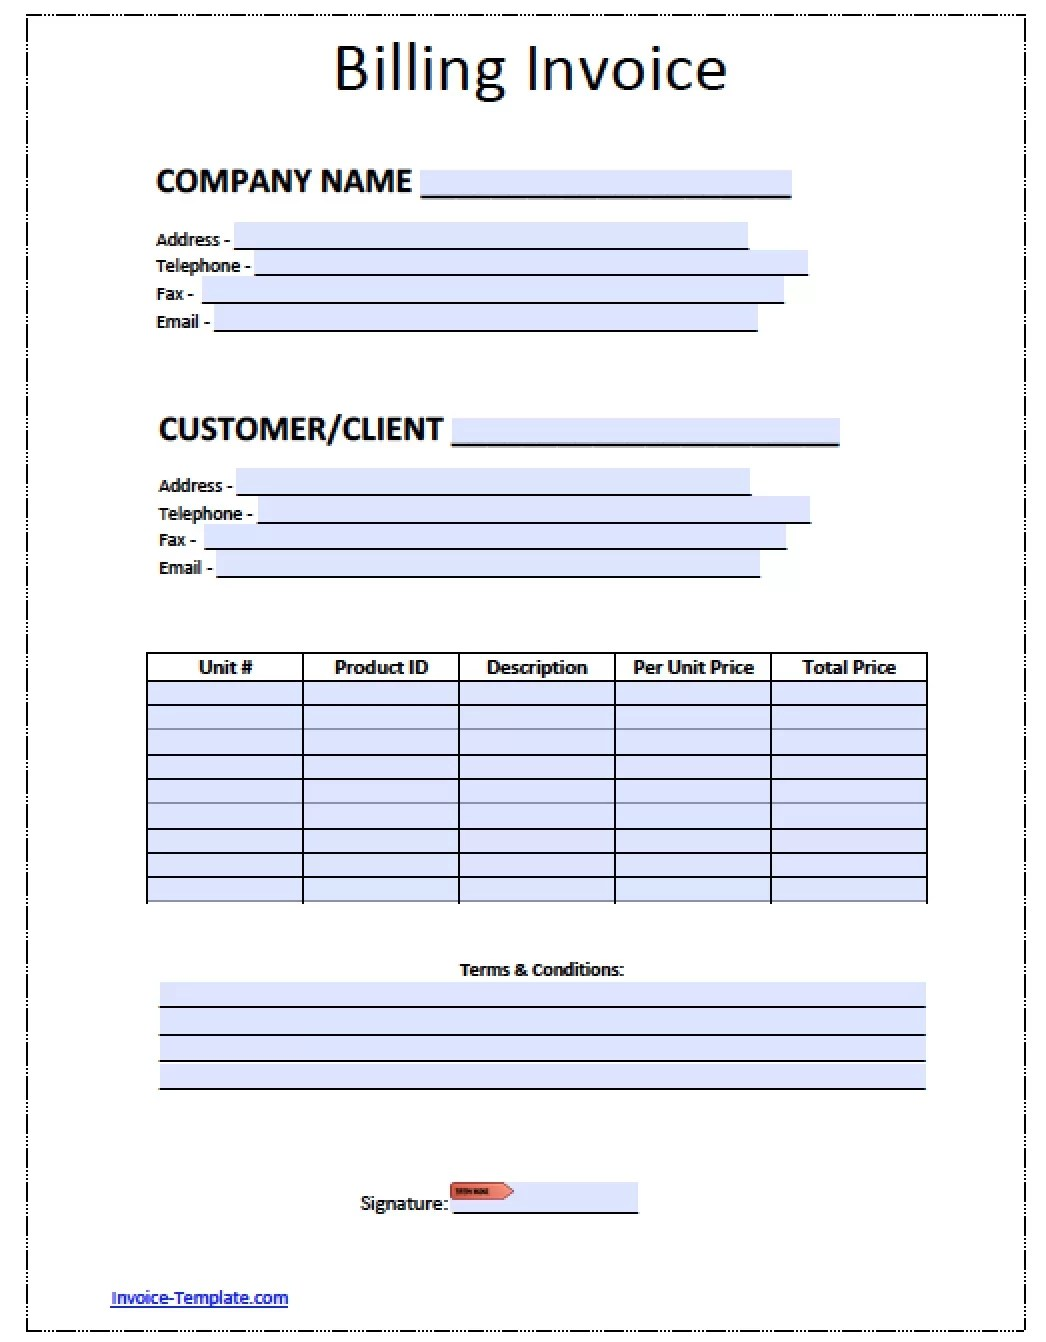 free invoice templates for word excel open office invoiceberry – Invoice Template Word Free